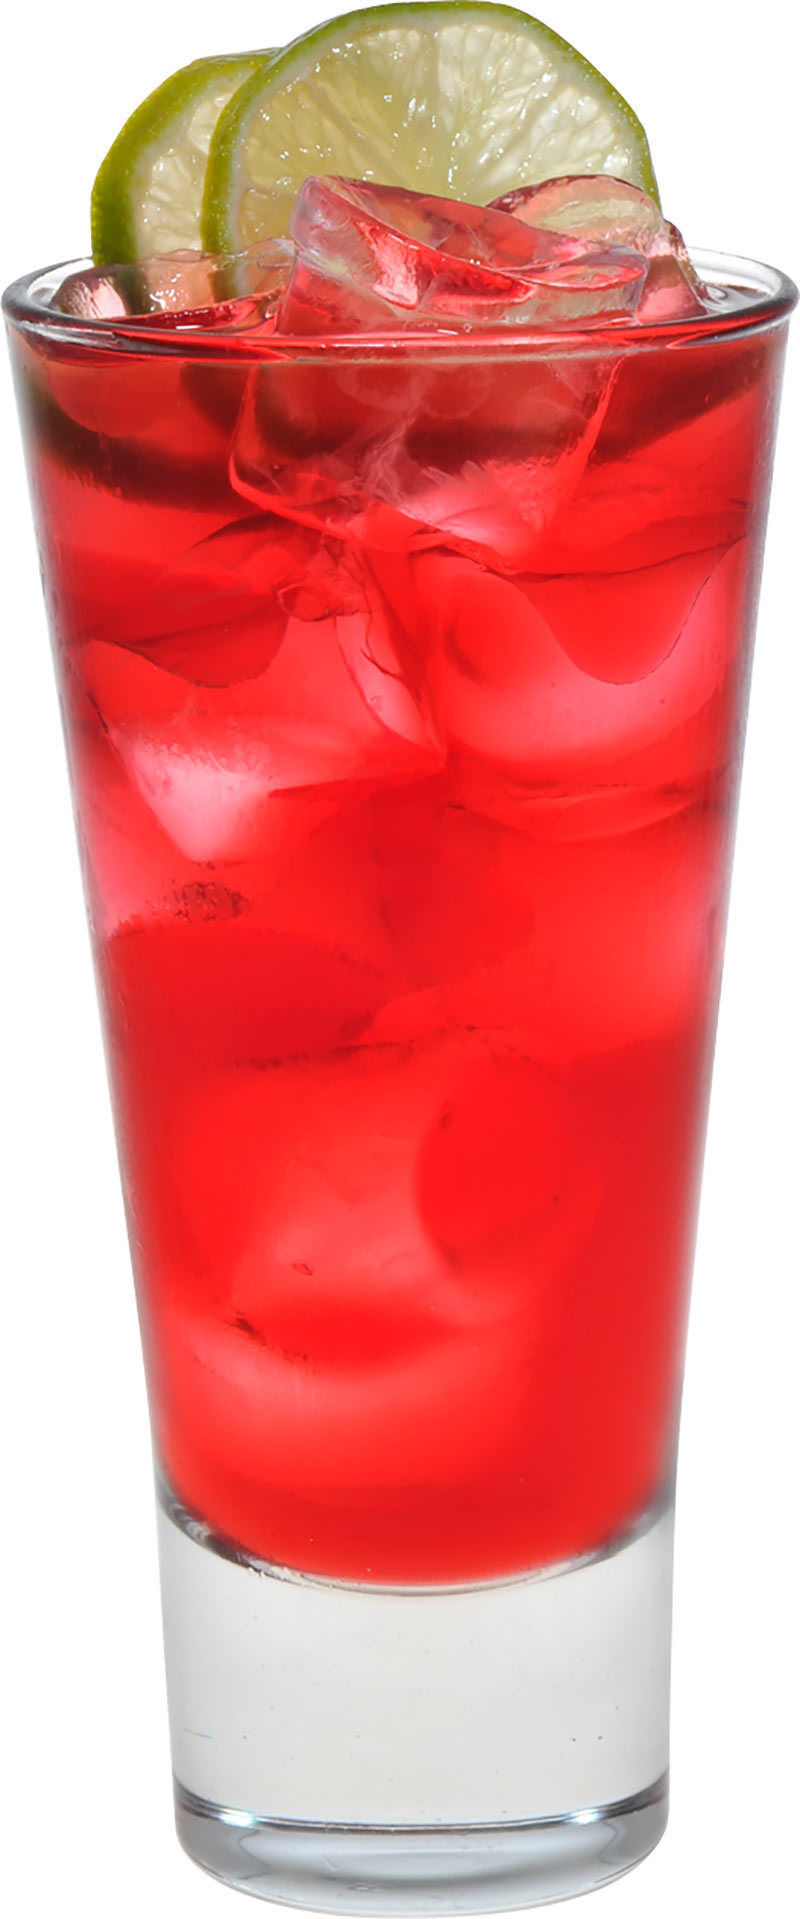 How to Make the Rum With Cranberry Juice